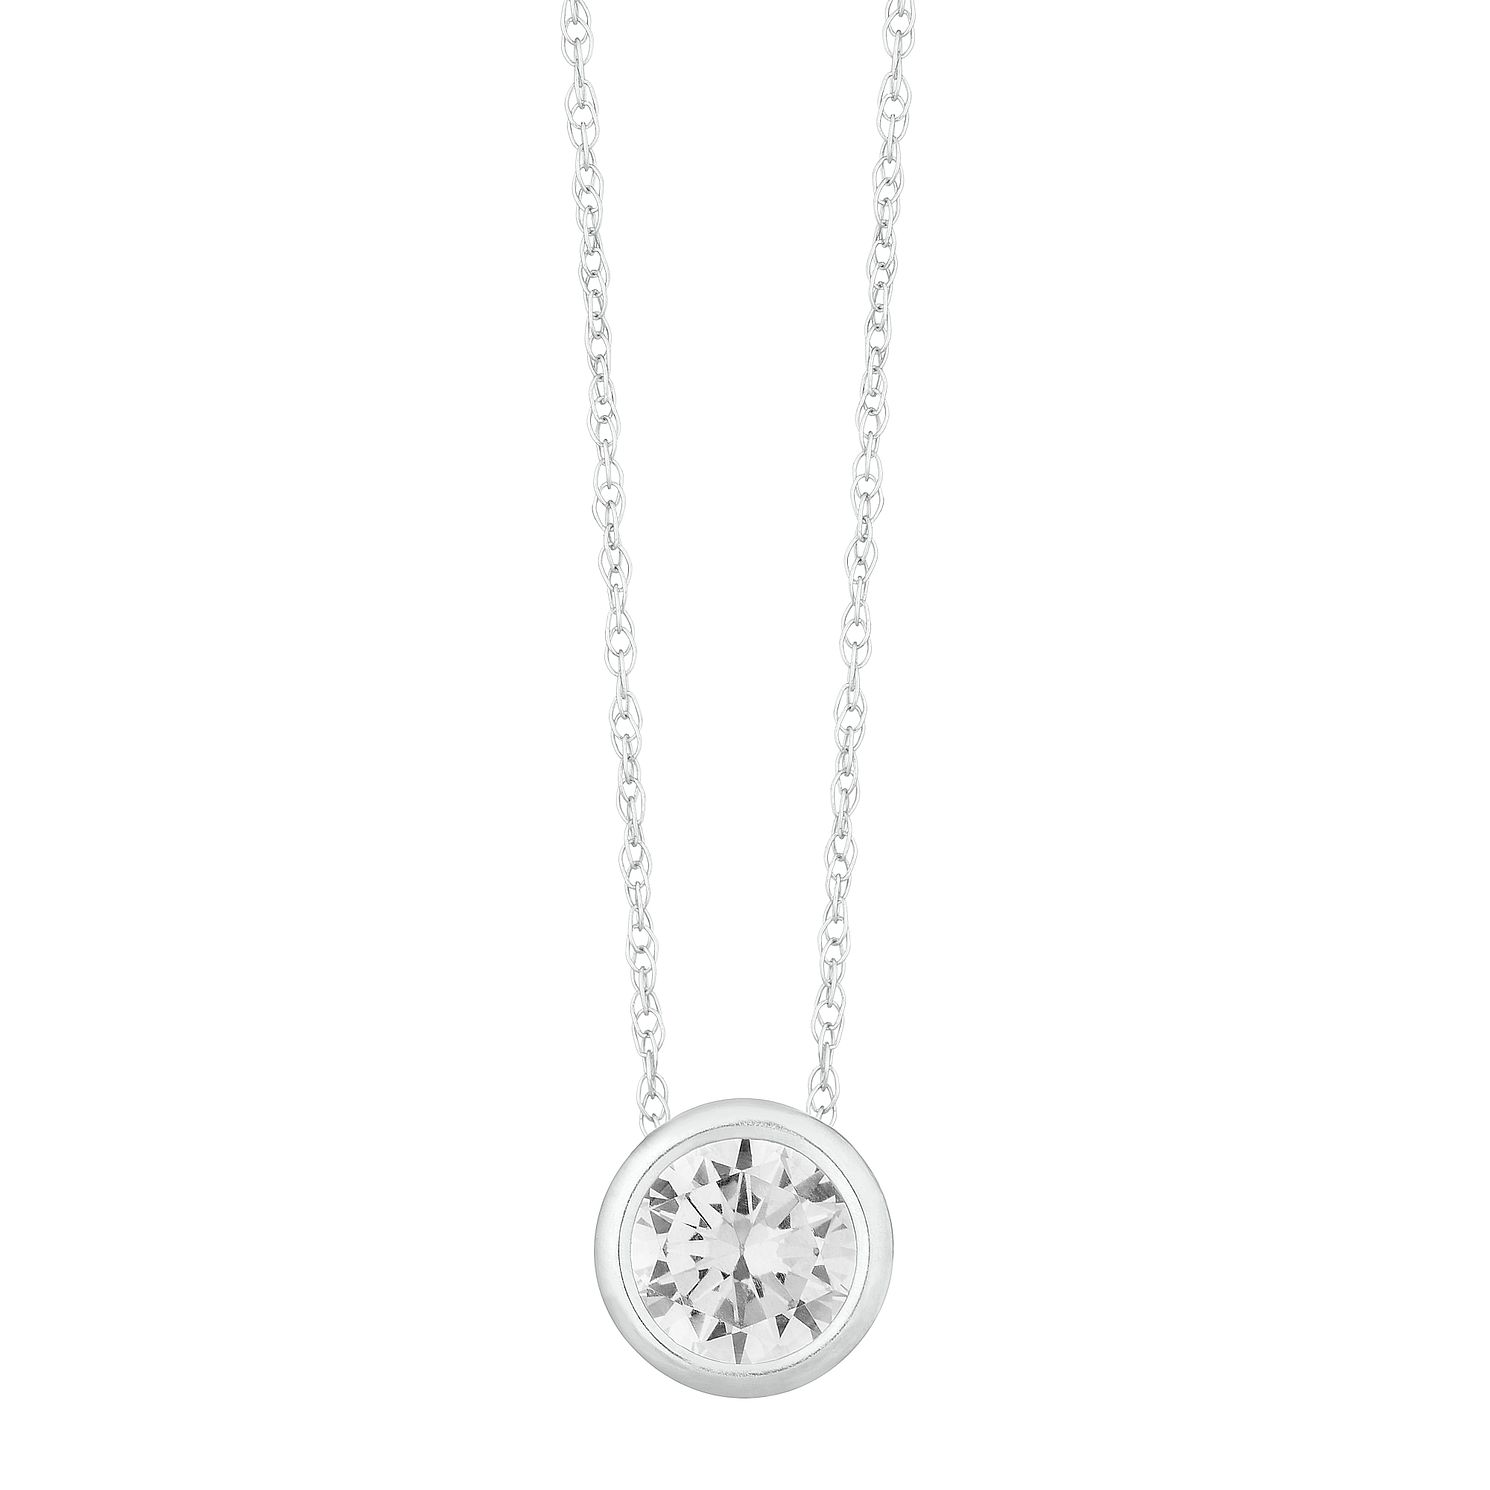 9ct White Gold Cubic Zirconia Round Pendant - Product number 3130320